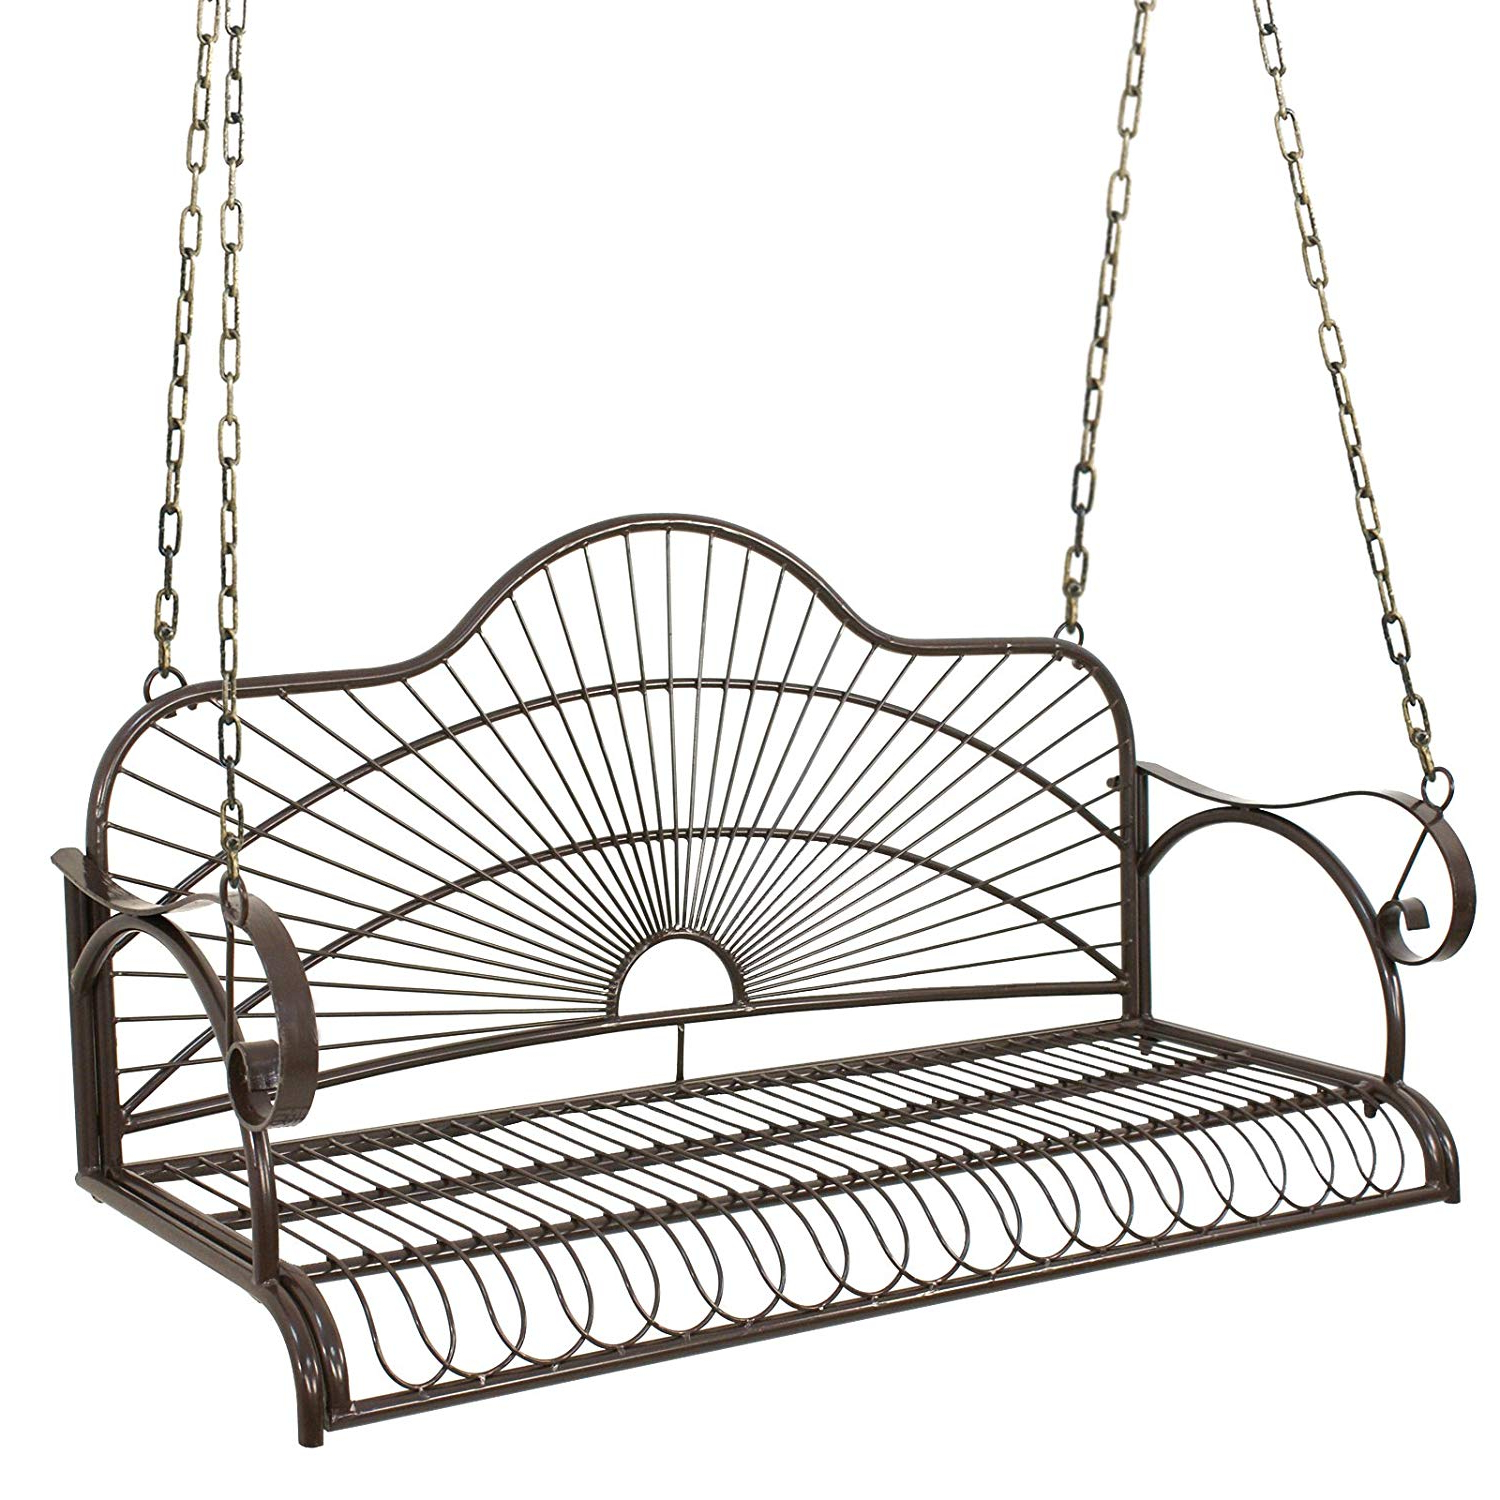 2 Person Antique Black Iron Outdoor Swings With Regard To Most Up To Date Amazon : Nova Microdermabrasion Patio Metal Hanging (View 19 of 30)